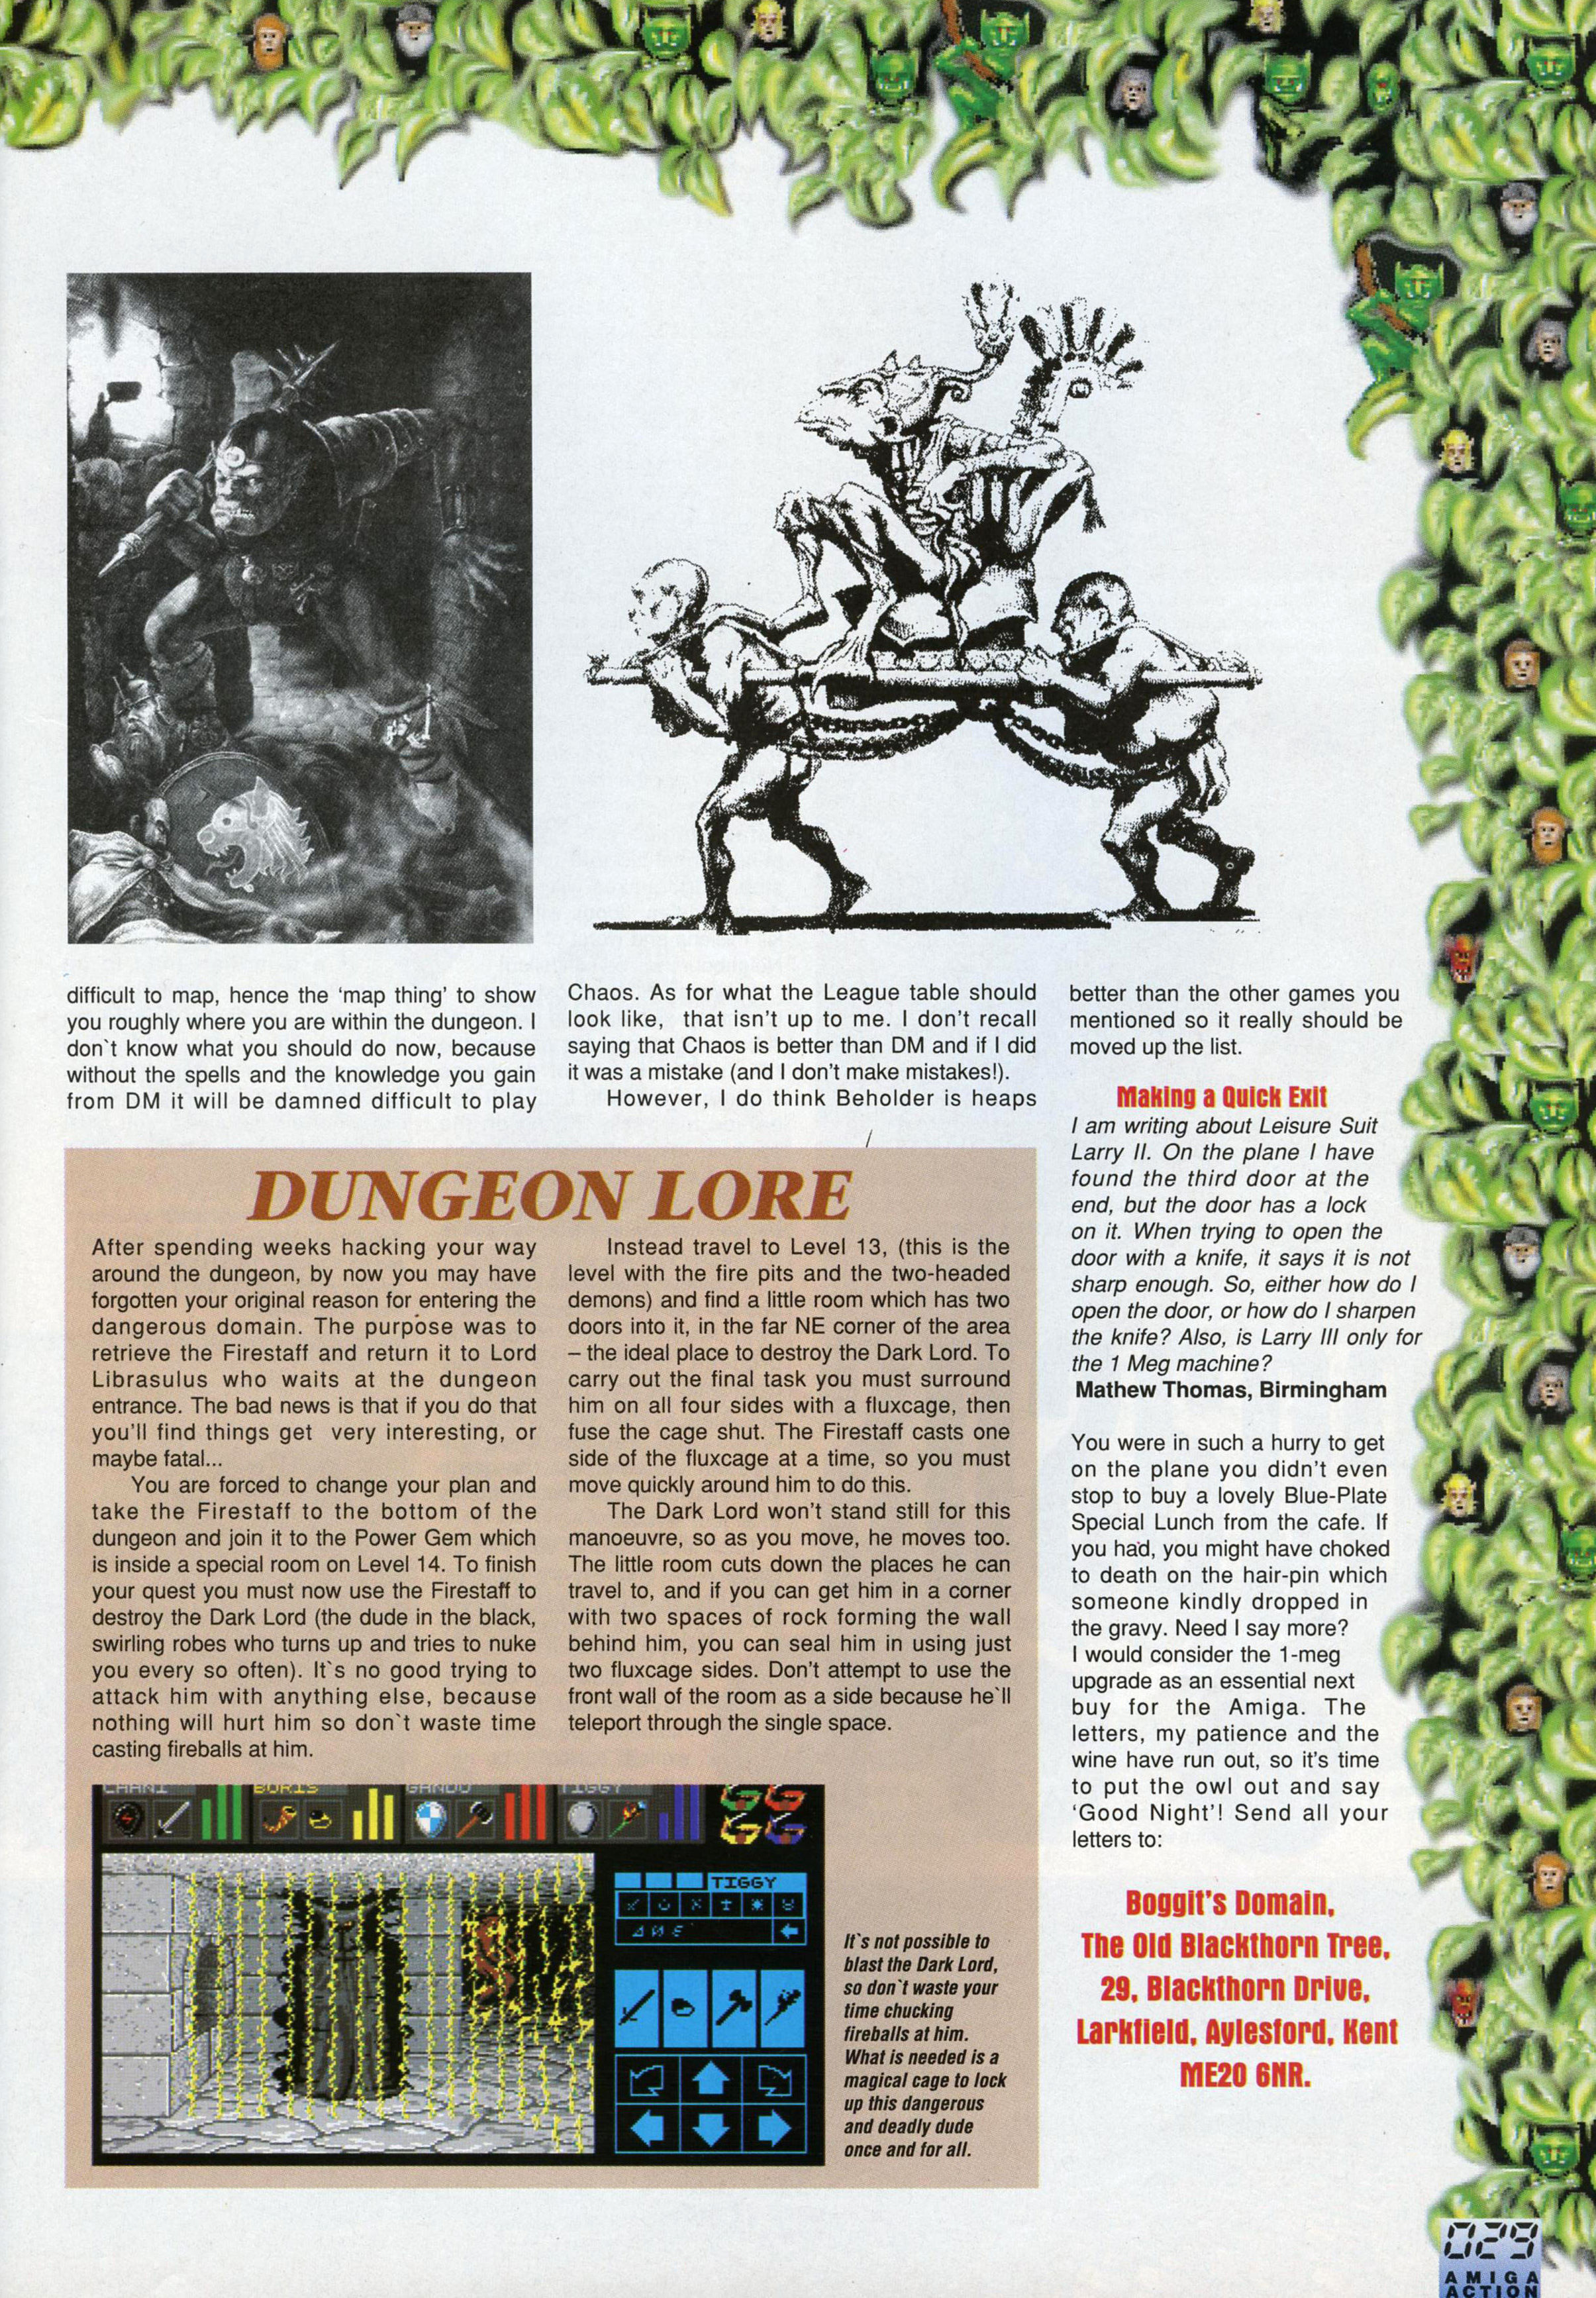 Dungeon Master And Chaos Strikes Back Hints published in British magazine 'Amiga Action', Issue #25 October 1991, Page 29